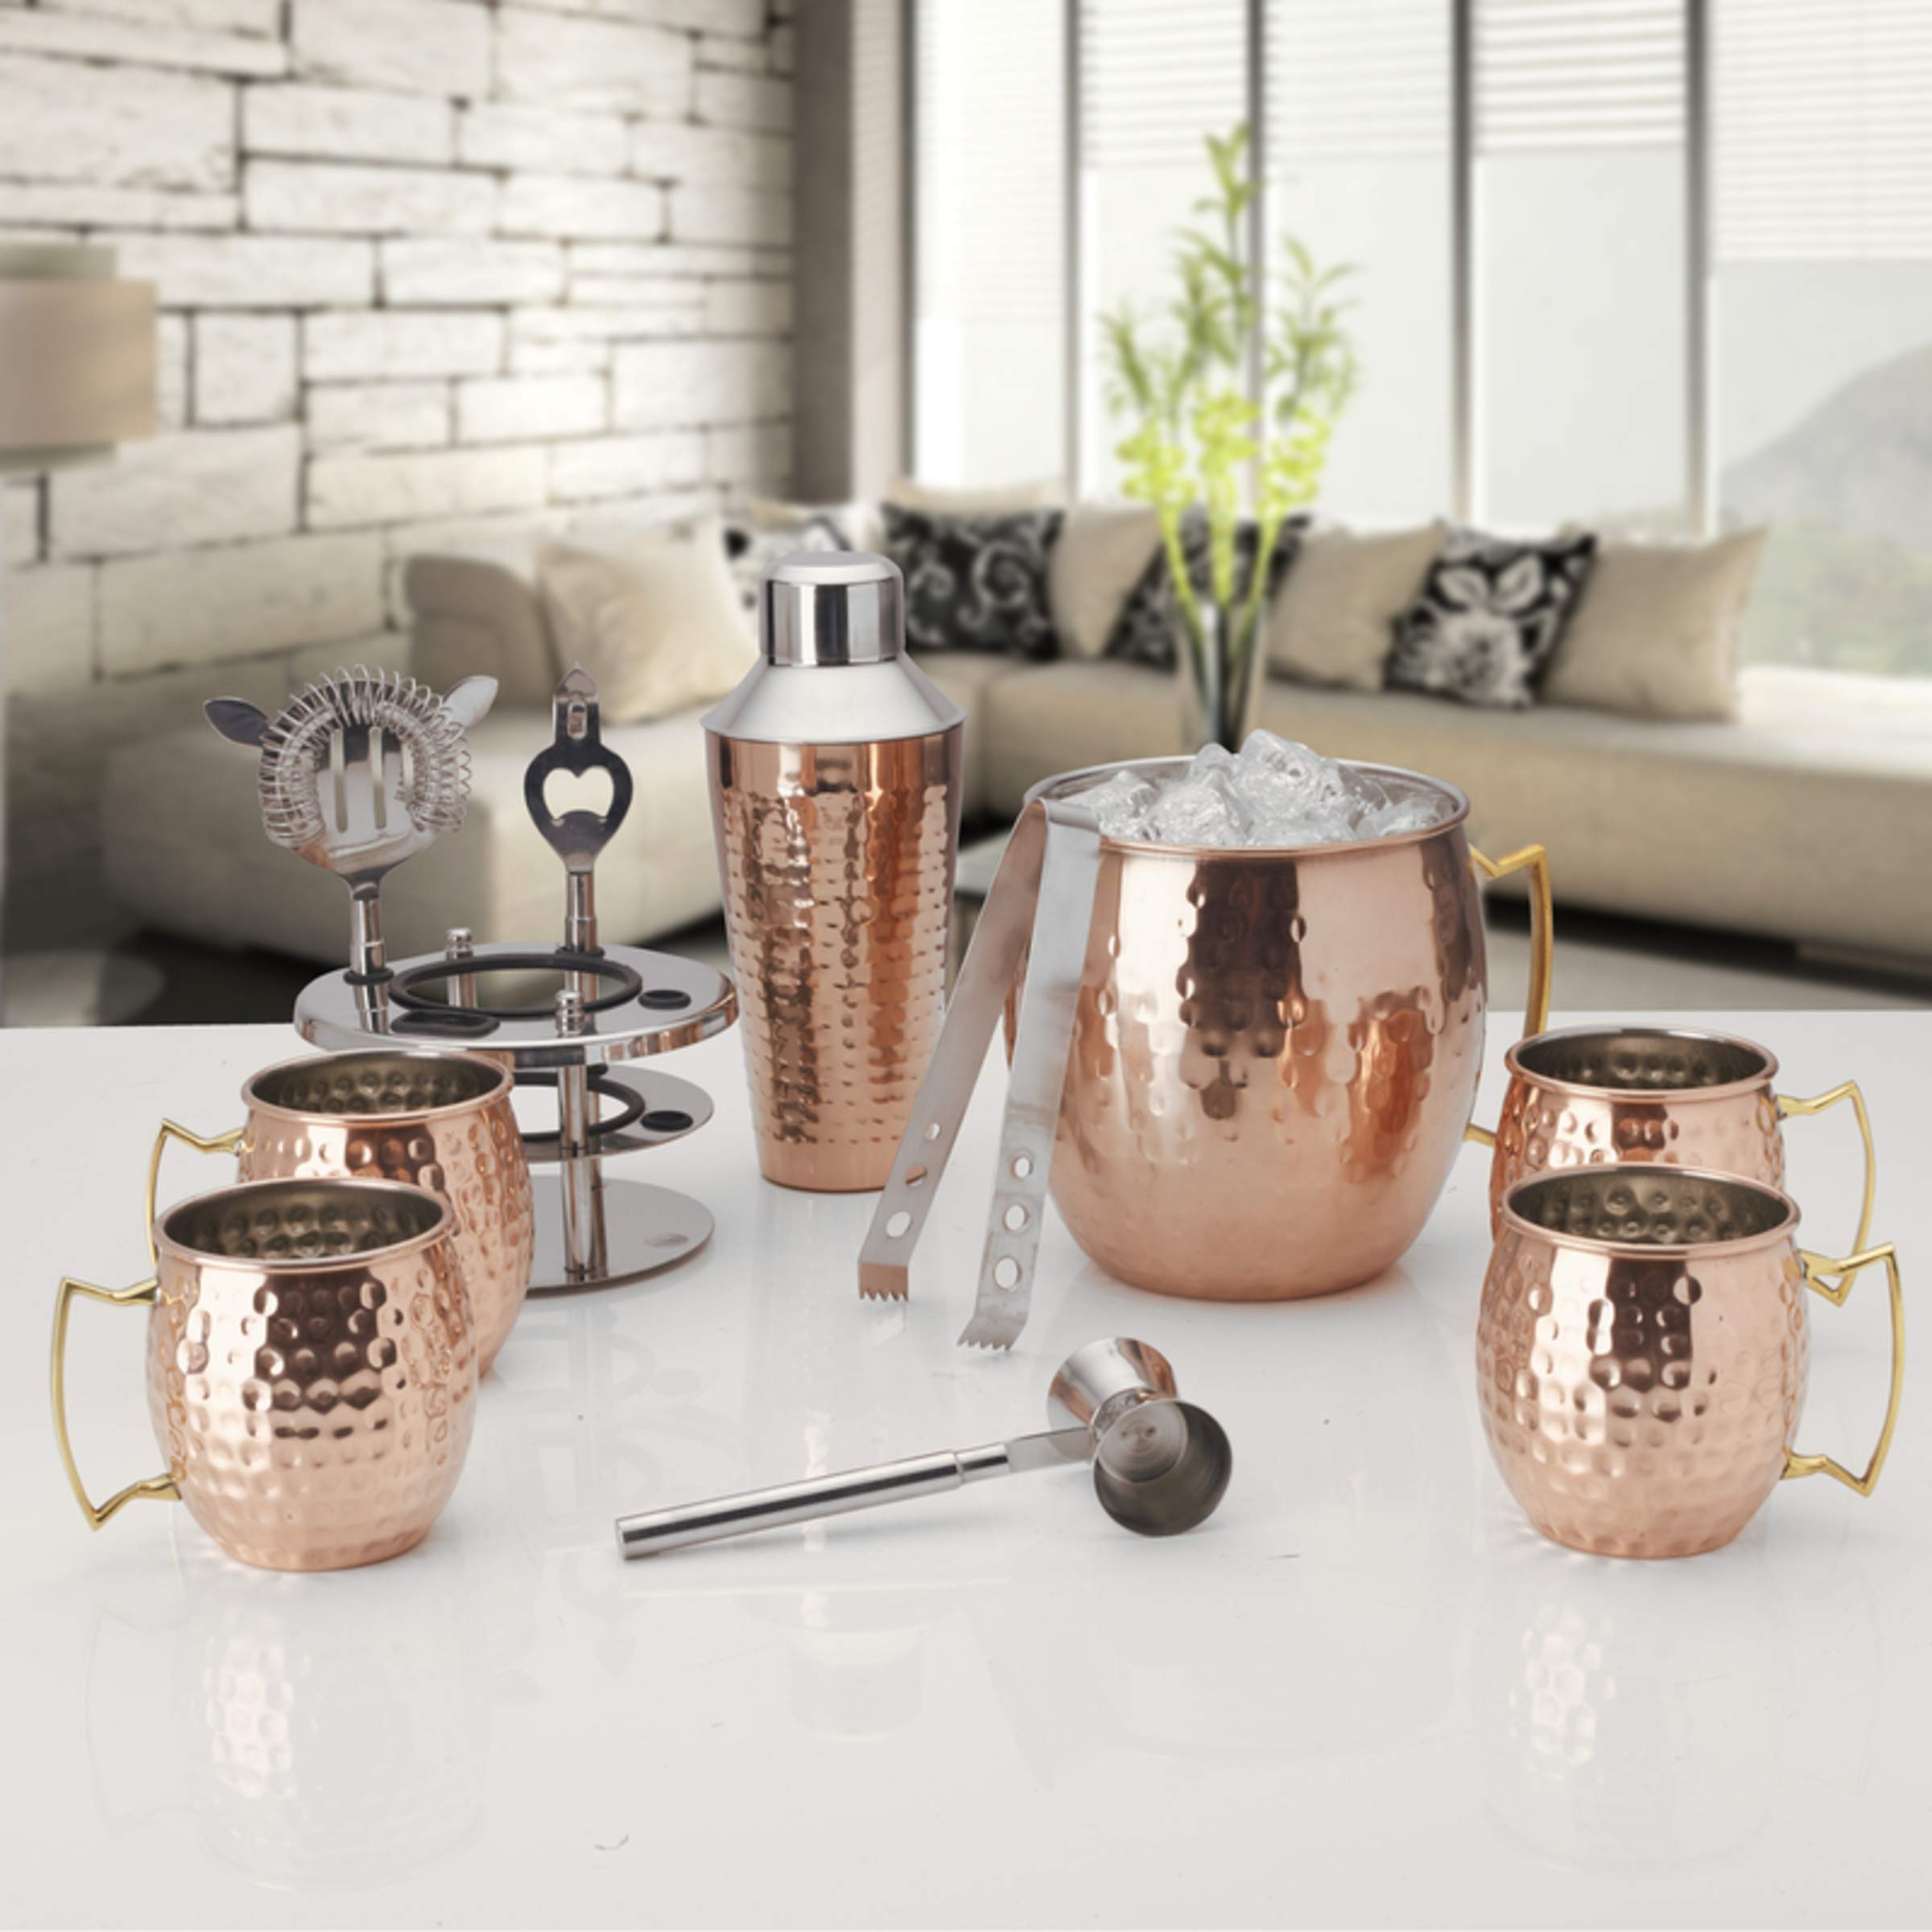 Mikasa 5215371 Oversized Hammered Moscow Mule Copper-Plated Stainless Steel Bar Set, 6-Piece,